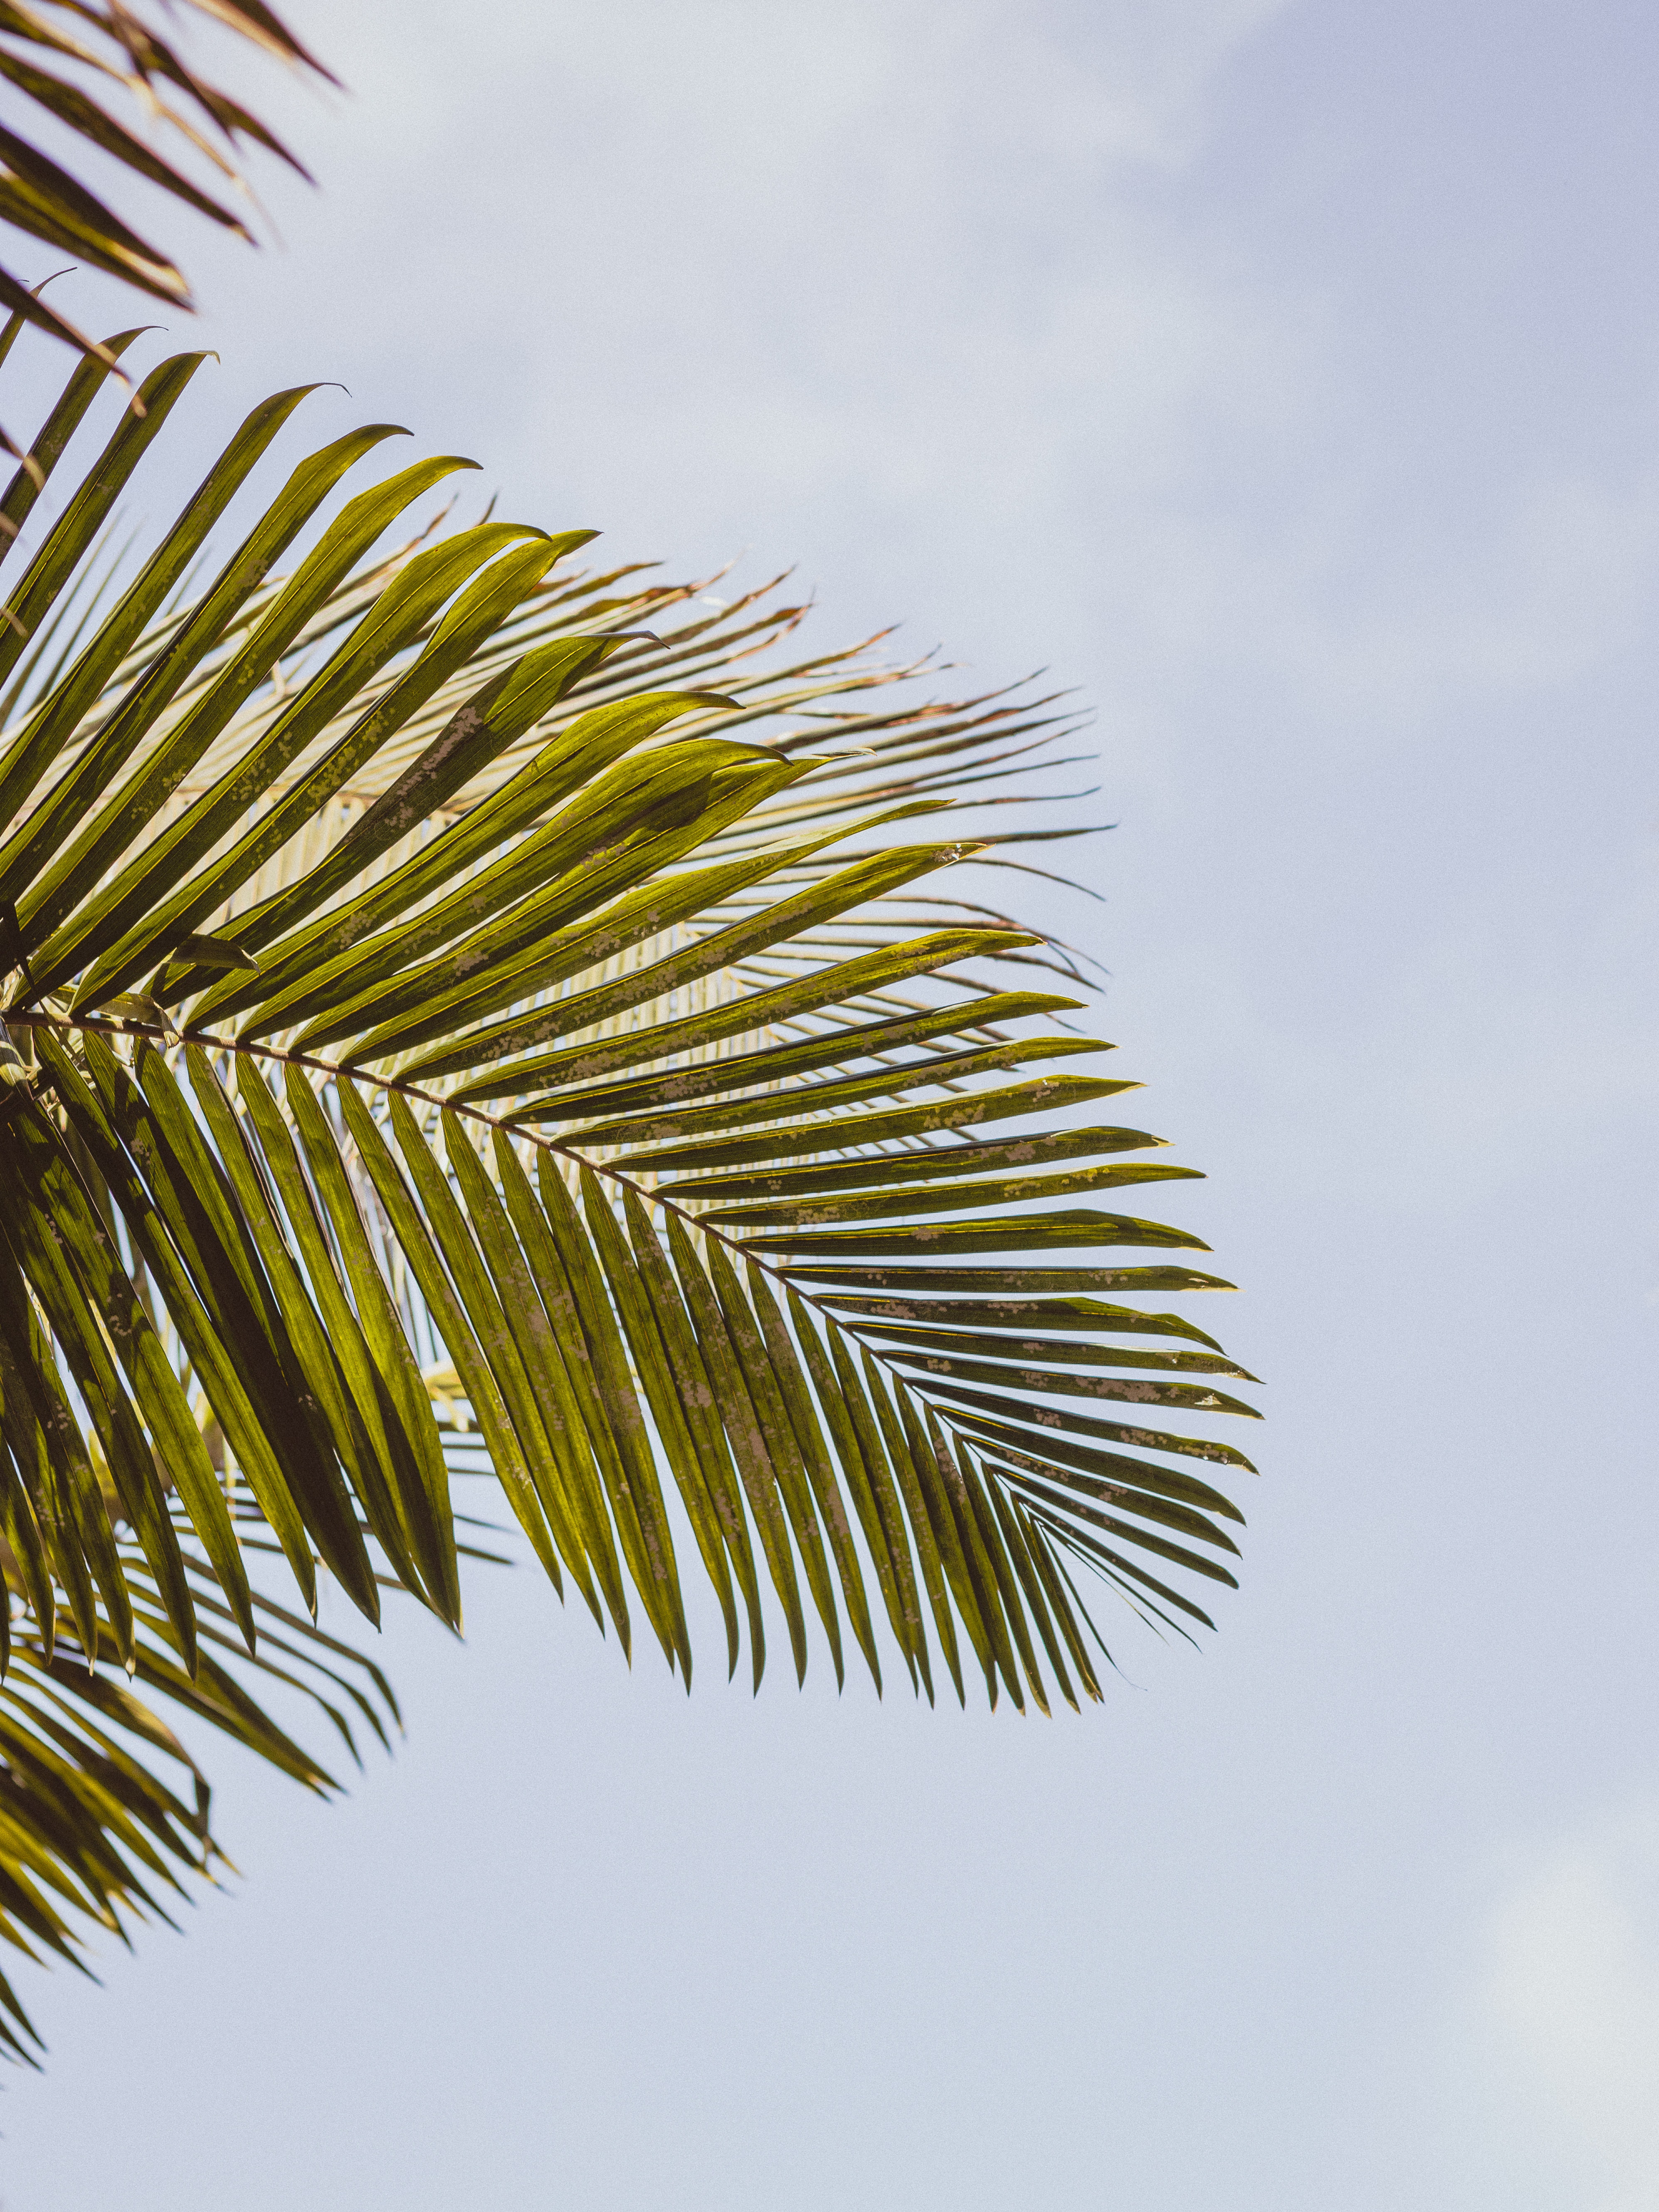 A green palm tree leaf against the blue sky